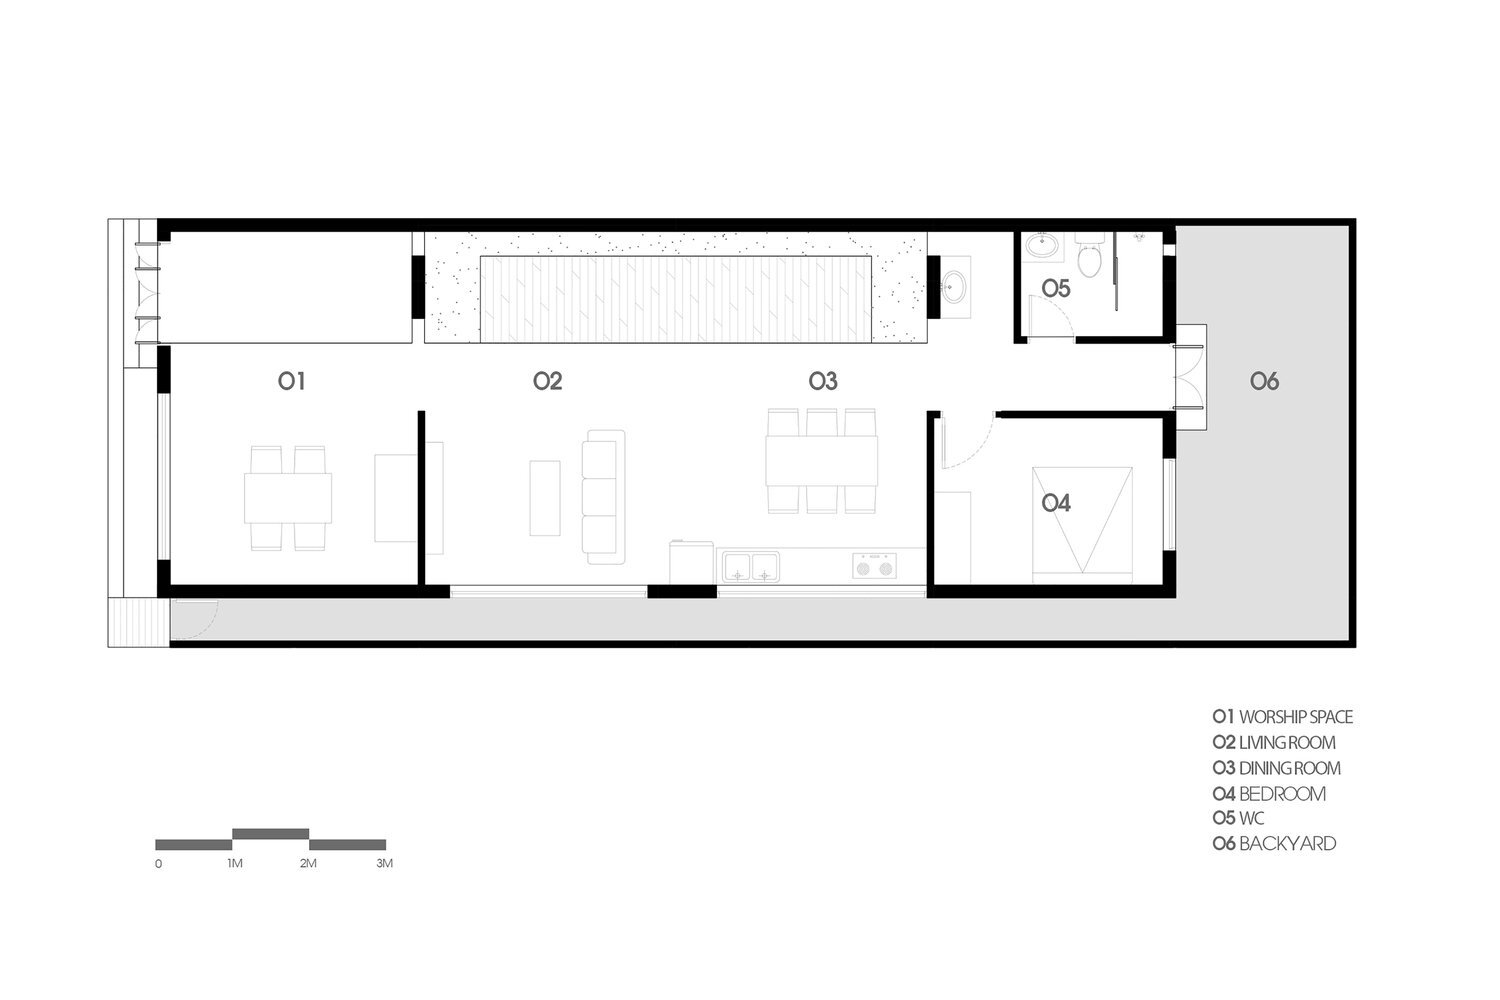 TP House - Sawadeesign Studio - Vietnam - Floor Plan - Humble Homes